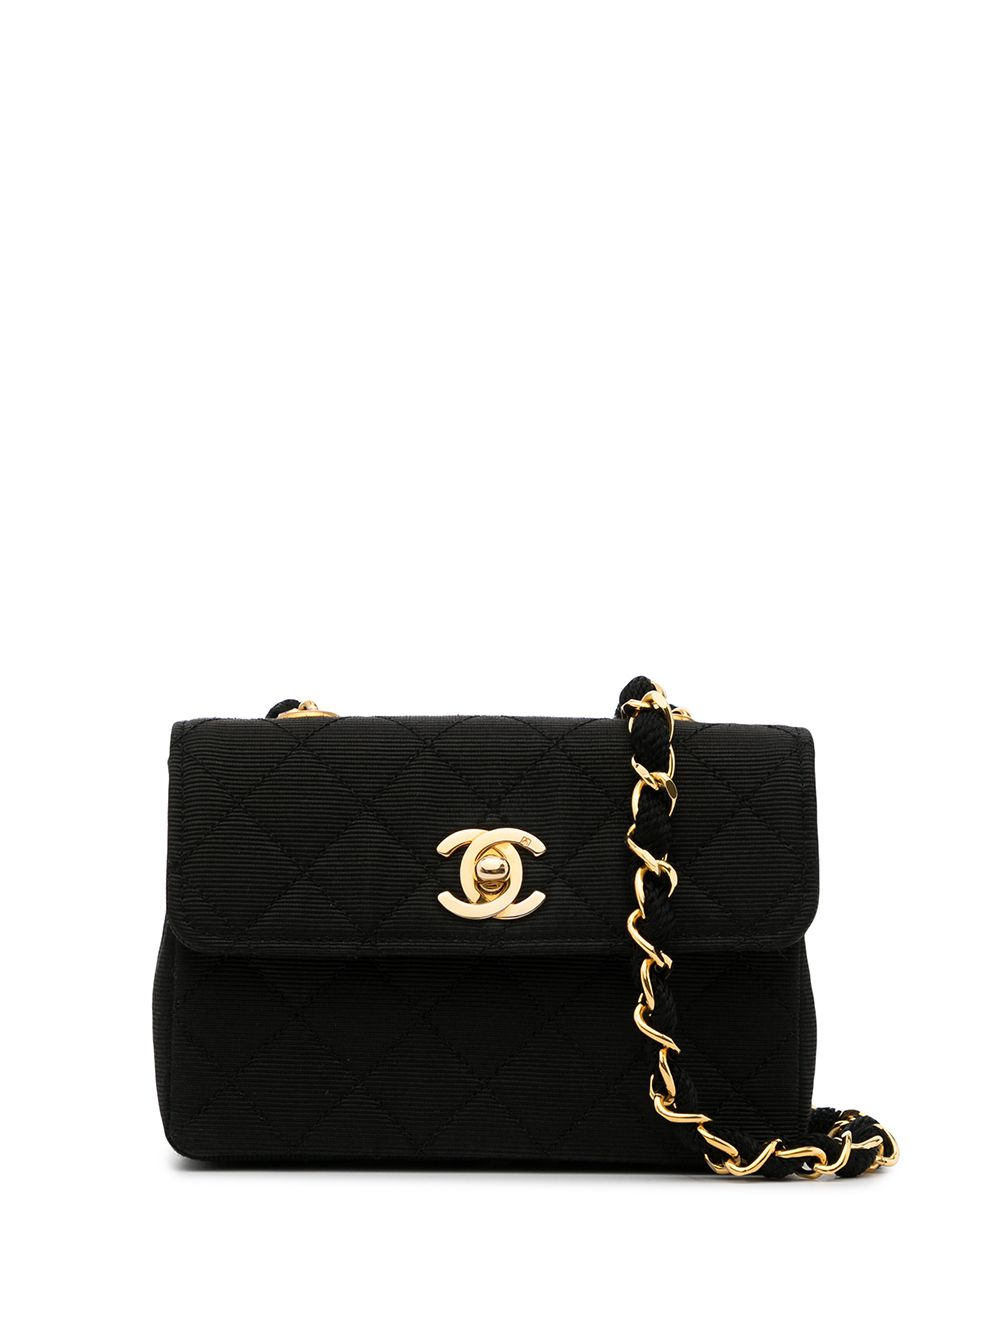 Chanel Pre-Owned 1990 mini diamond quilted crossbody bag - Black